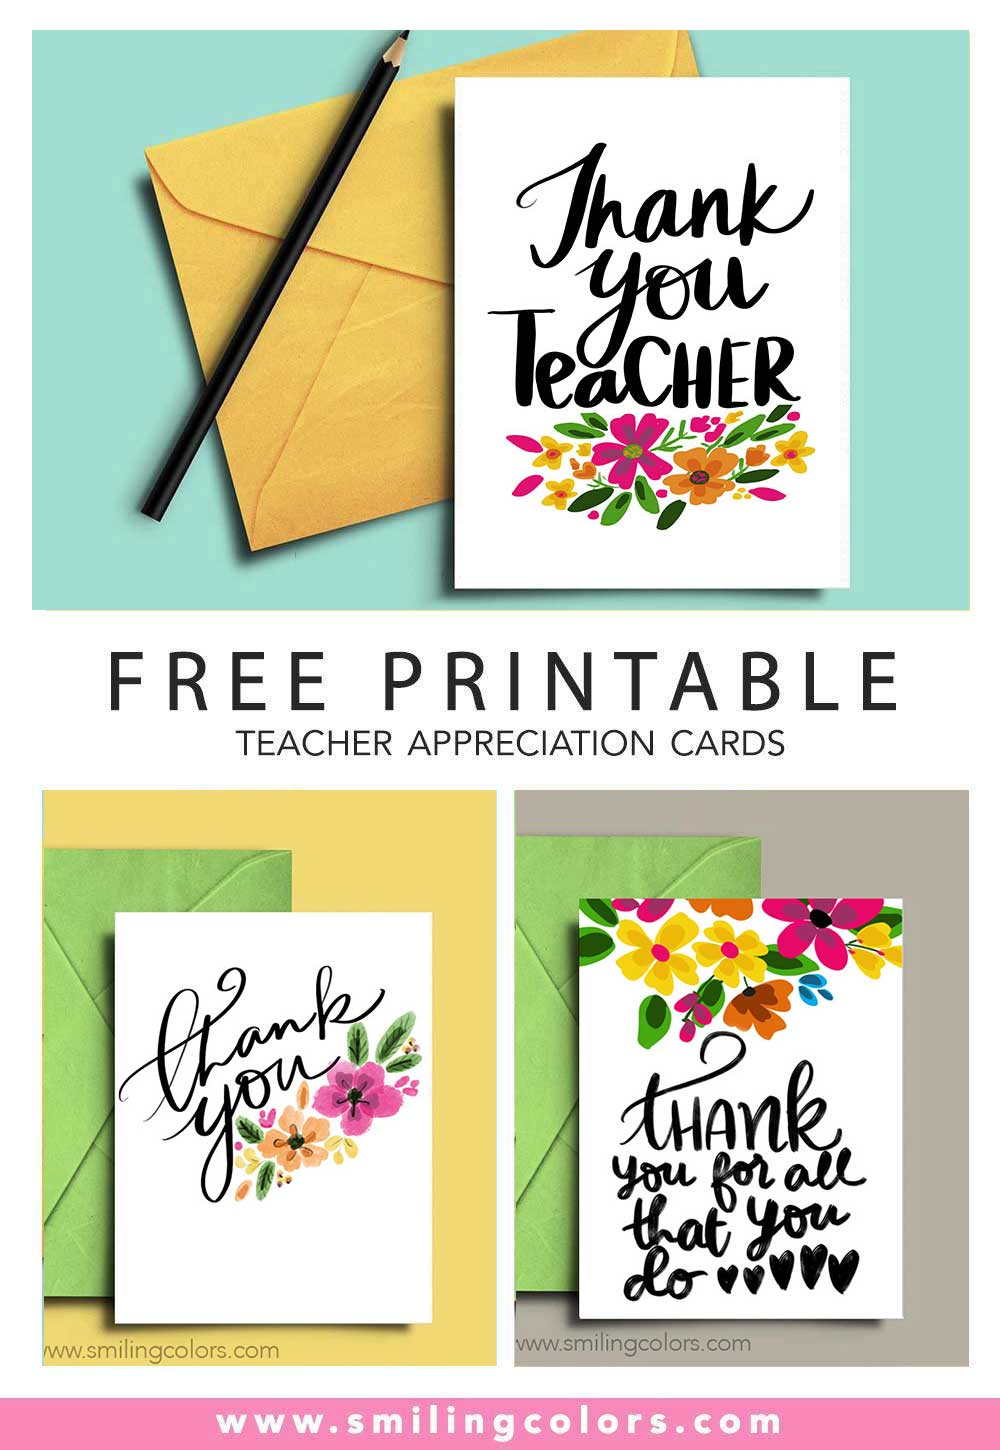 photograph relating to Free Printable Thank You referred to as Thank by yourself instructor: A fastened of Absolutely free printable take note playing cards